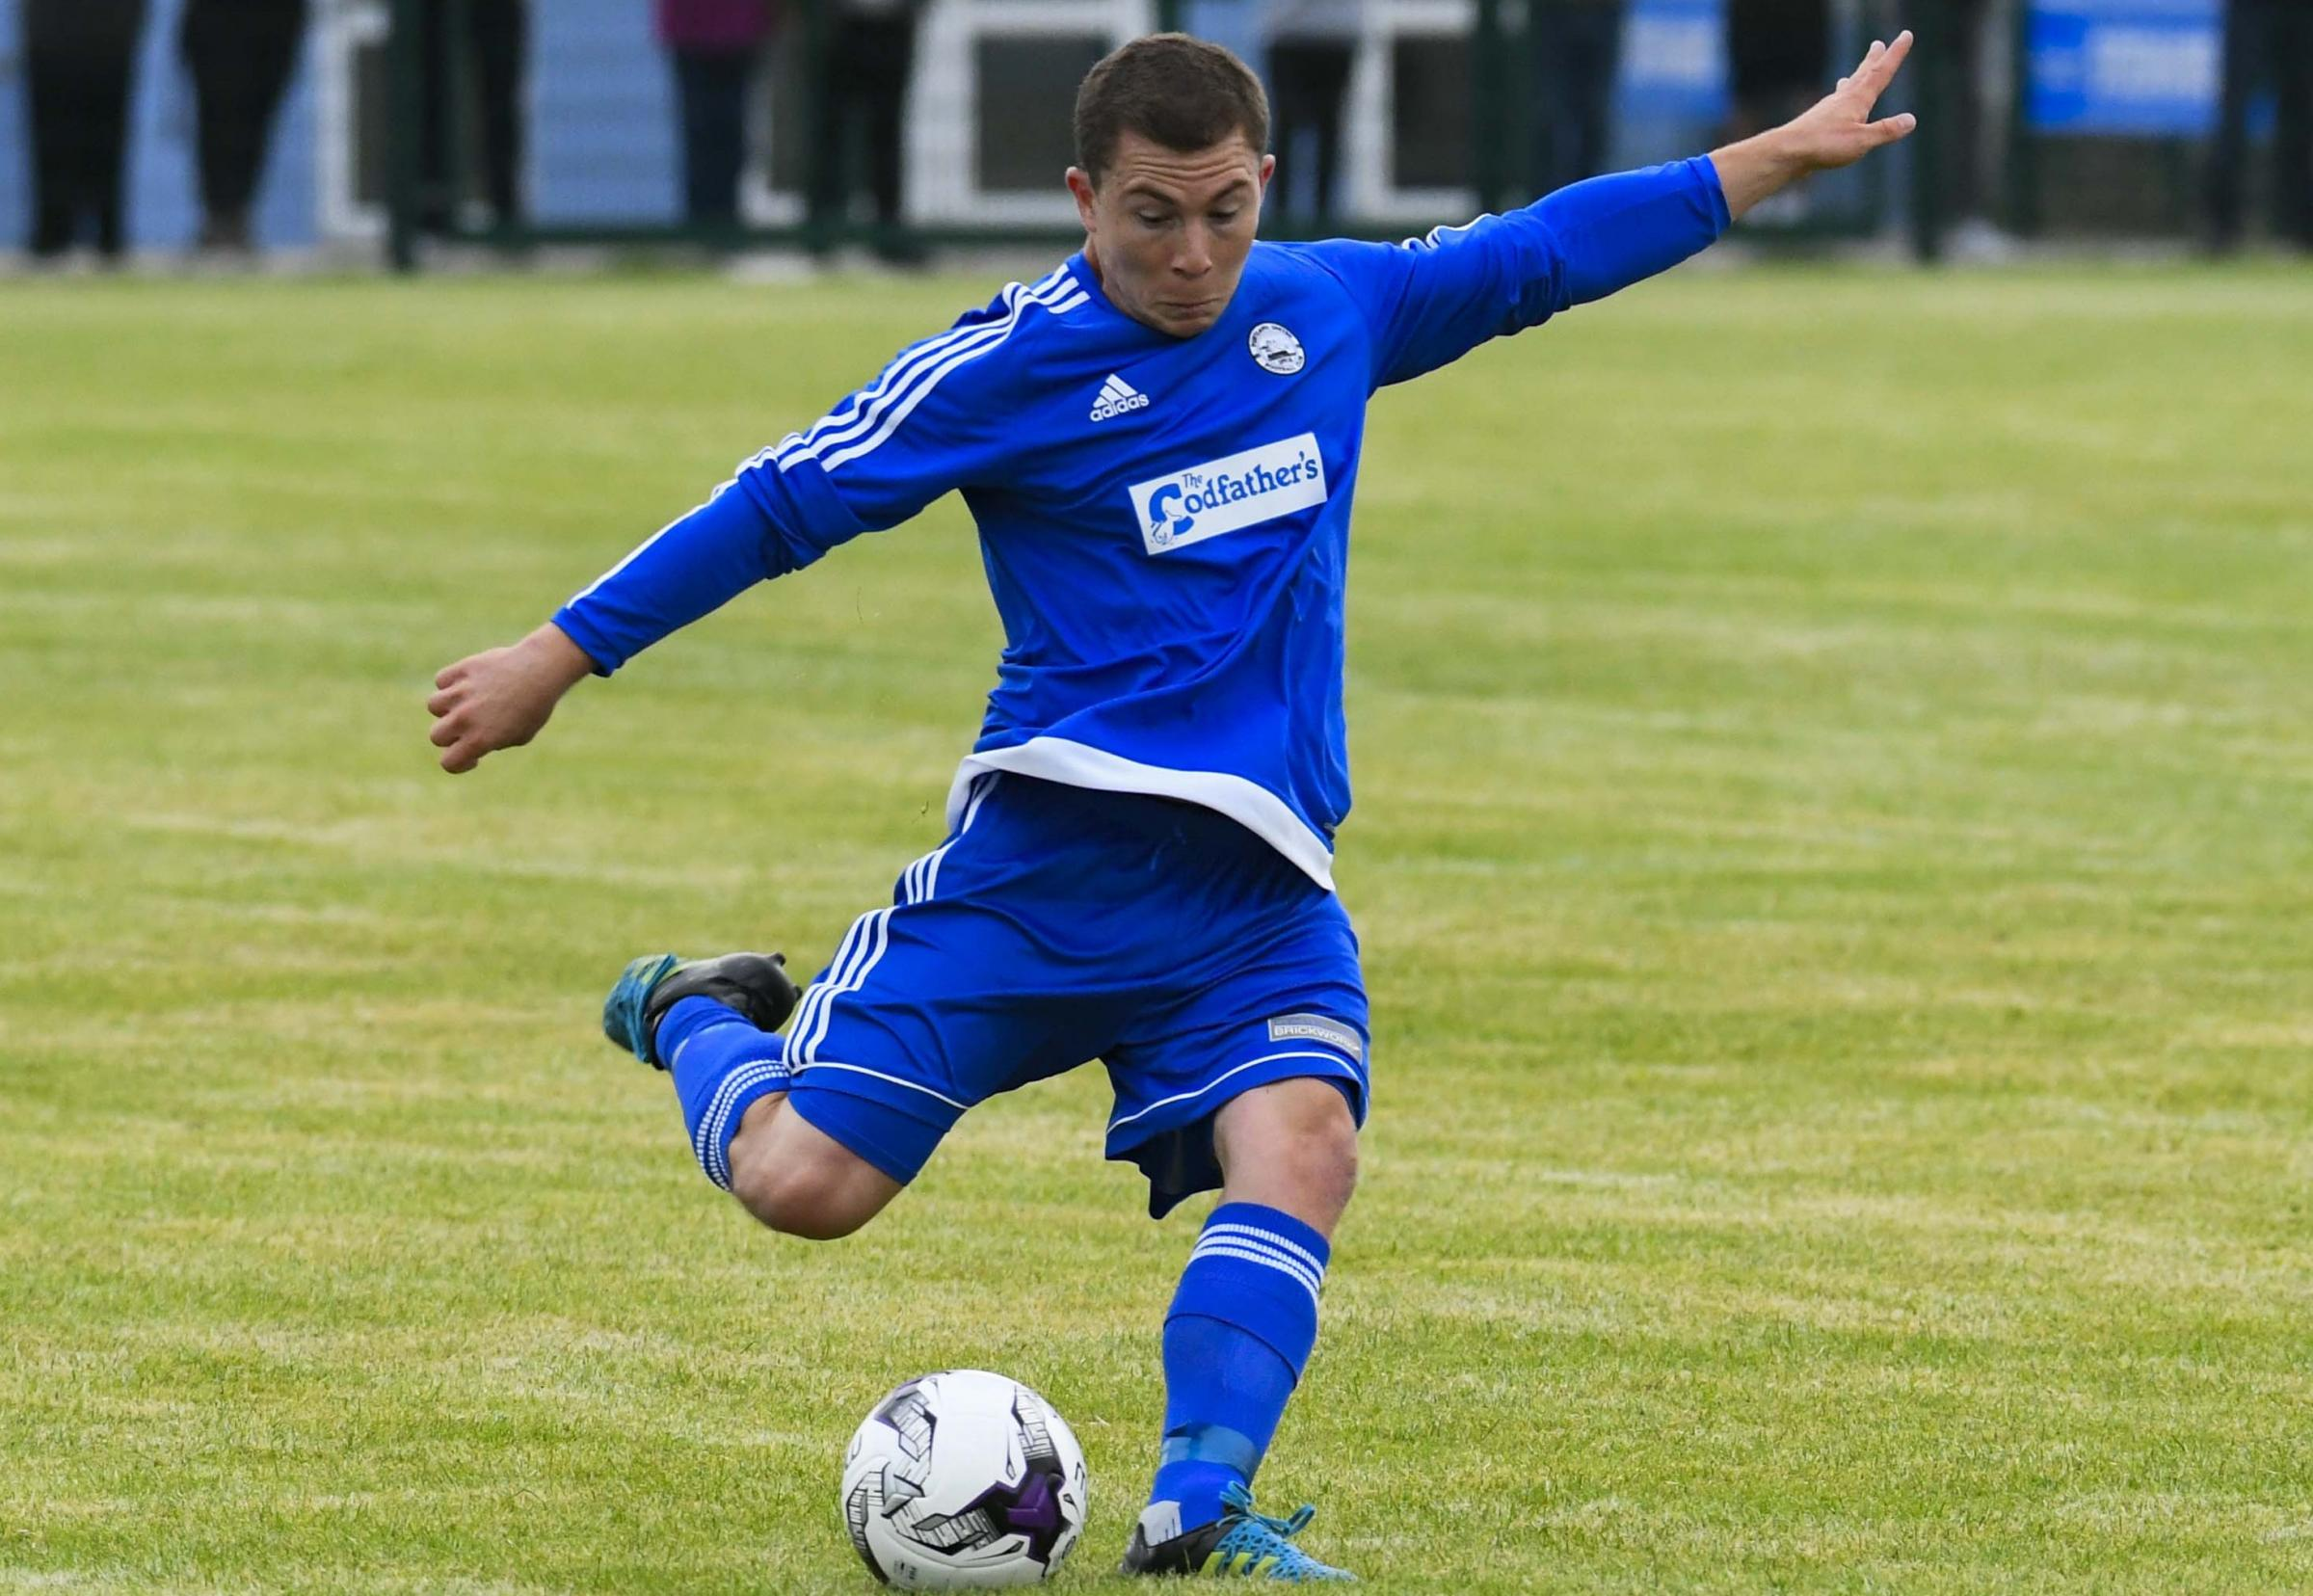 CUP BRACE: Alex Godfrey scored twice at Grove Corner                                   Picture: GRAHAM HUNT PHOTOGRAPHY